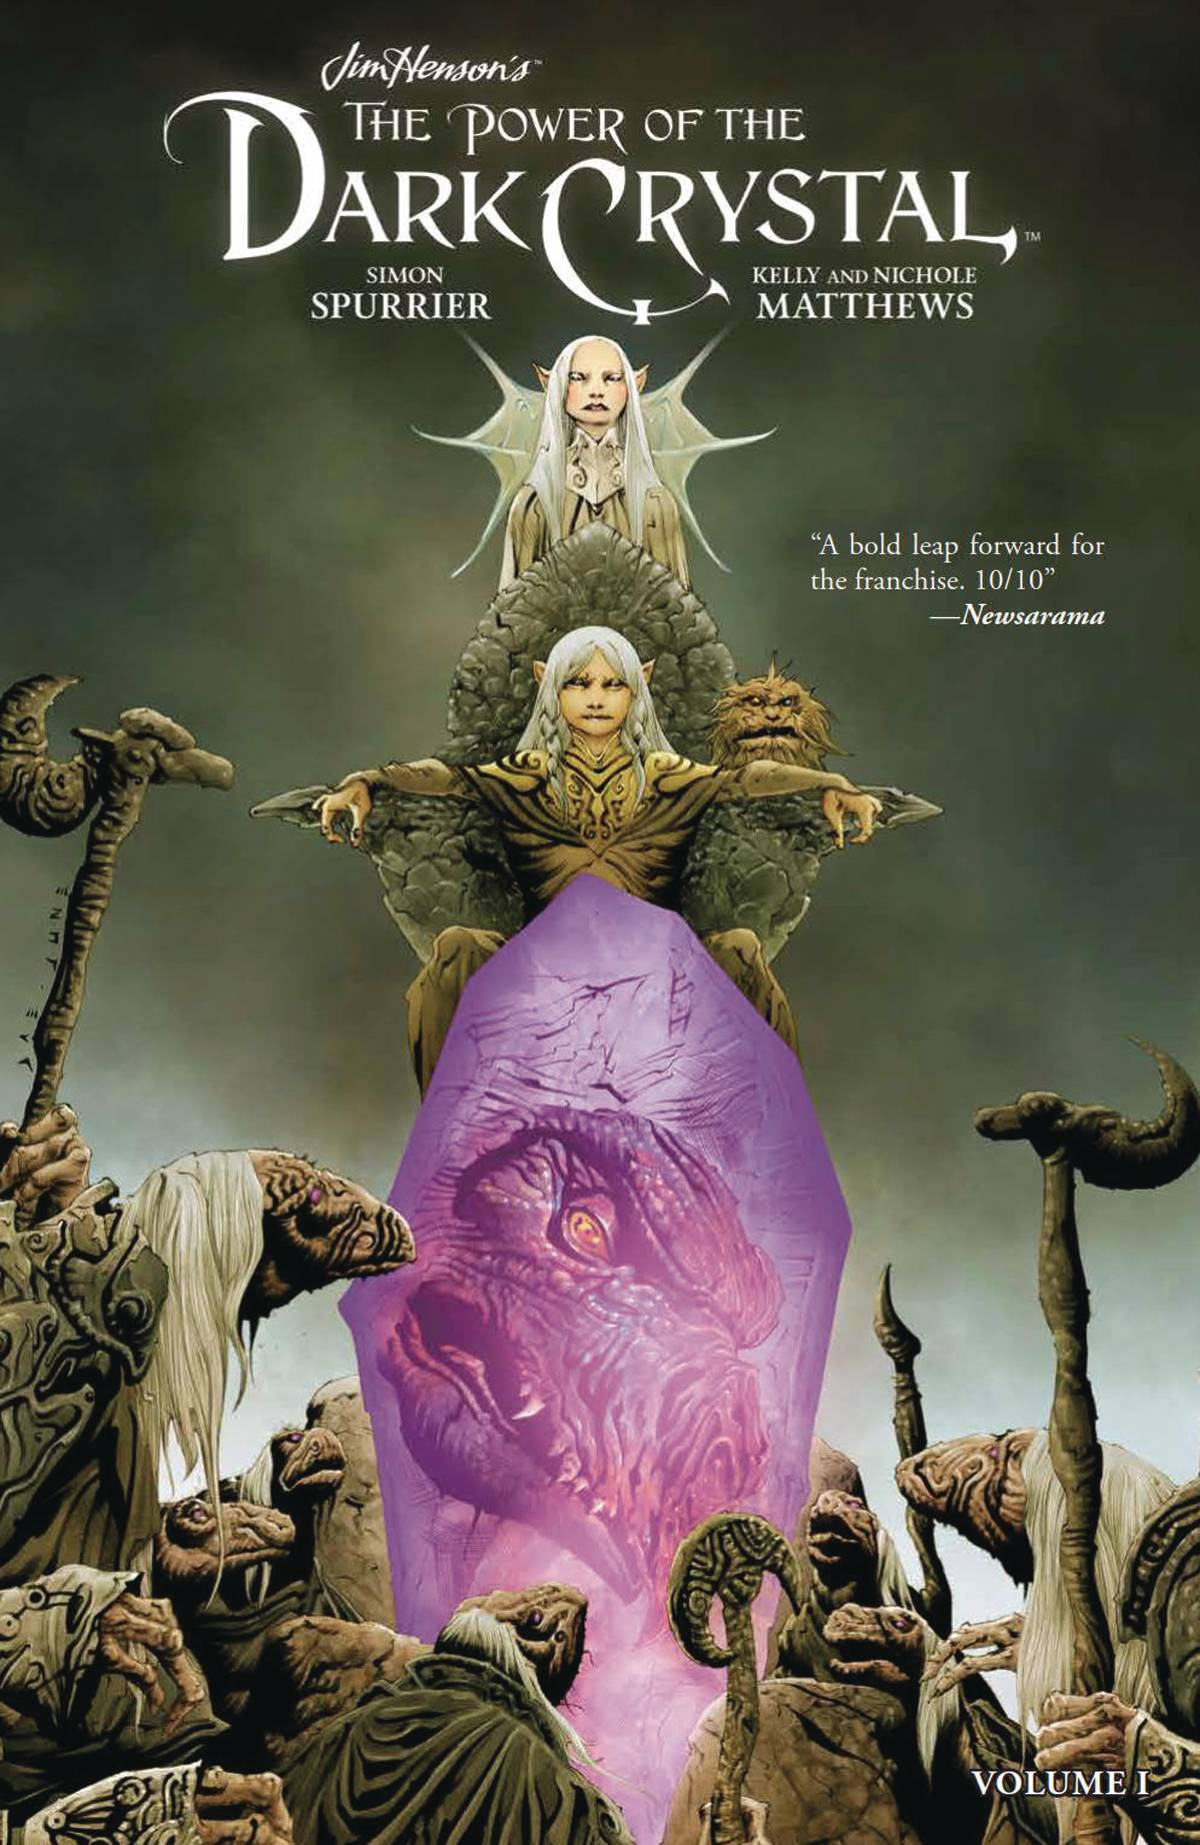 Jim Henson's The Dark Crystal: The Power of the Dark Crystal Volume 1